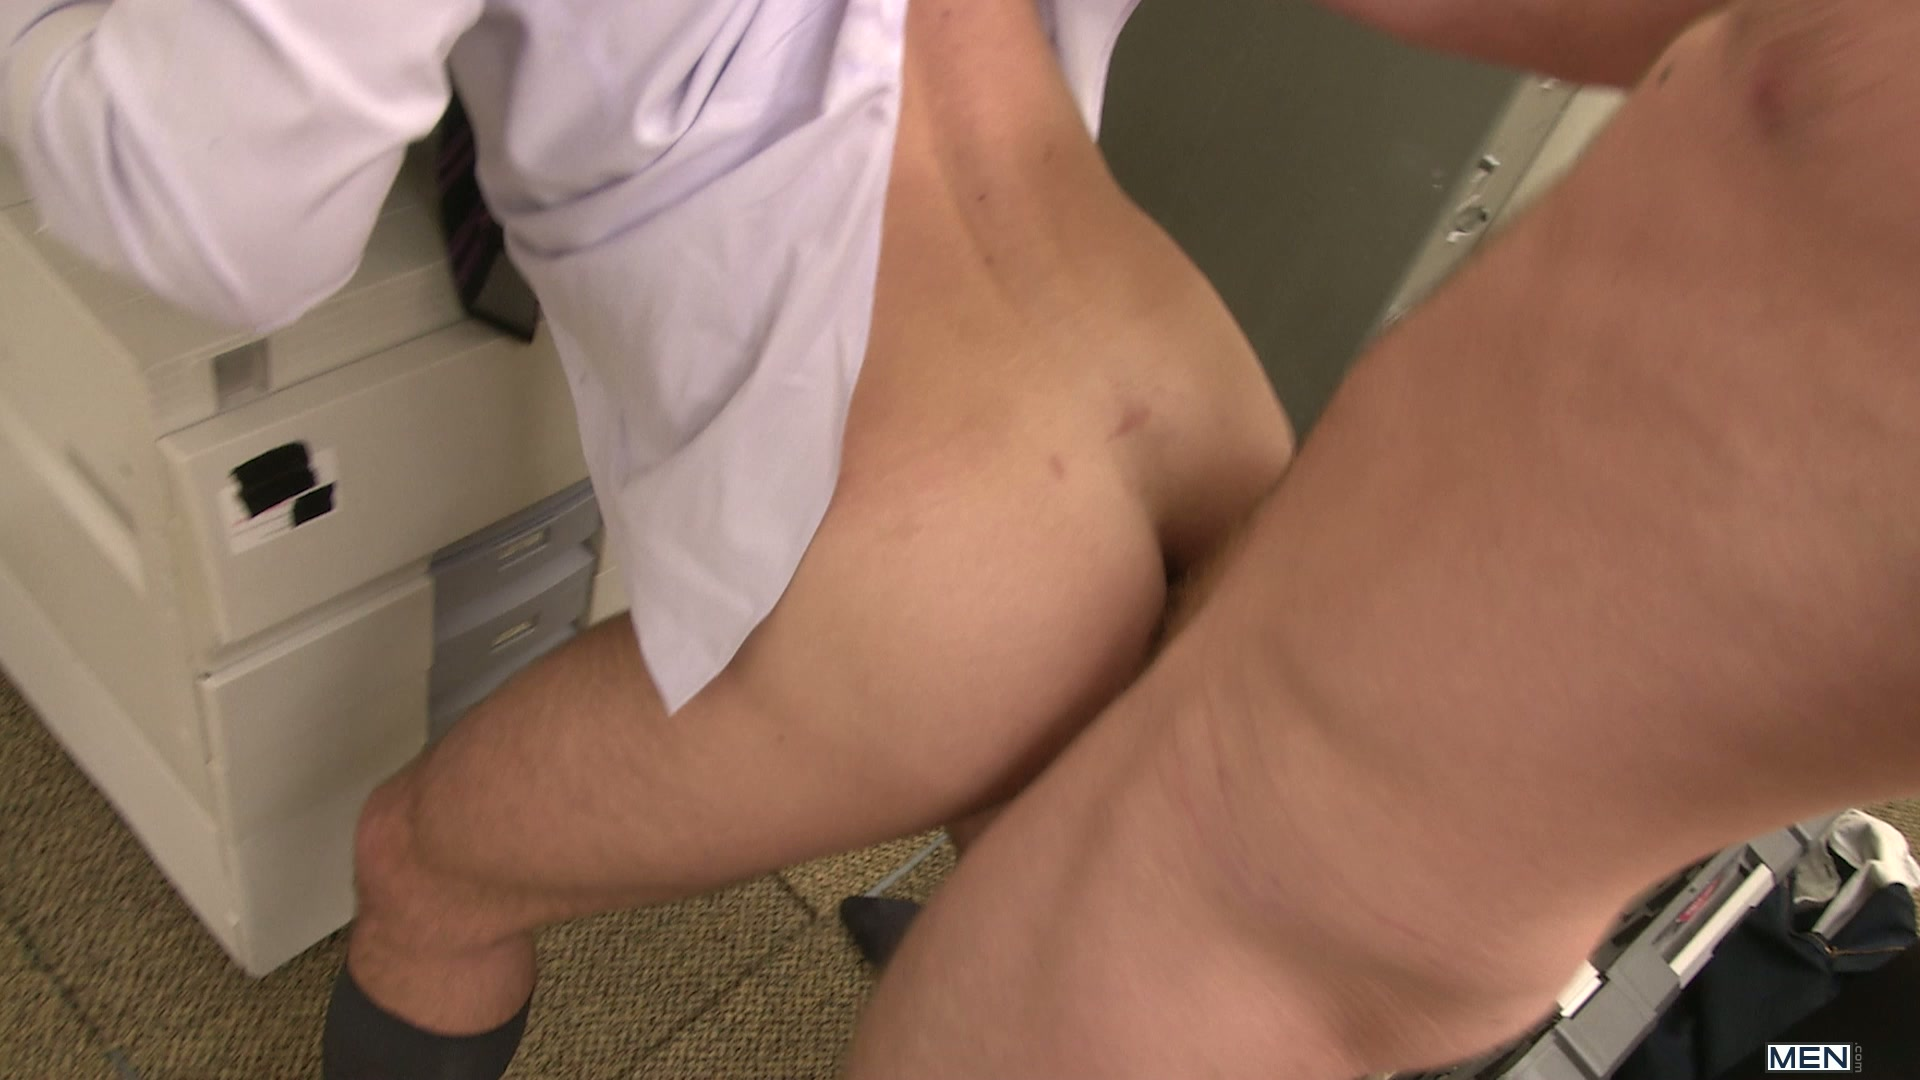 Watch The Office Slut Part 3 – Tgo – The Gay Office – Mike De Marko And Connor Maguire (MEN.COM) Gay Porn Tube Videos Gifs And Free XXX HD Sex Movies Photos Online